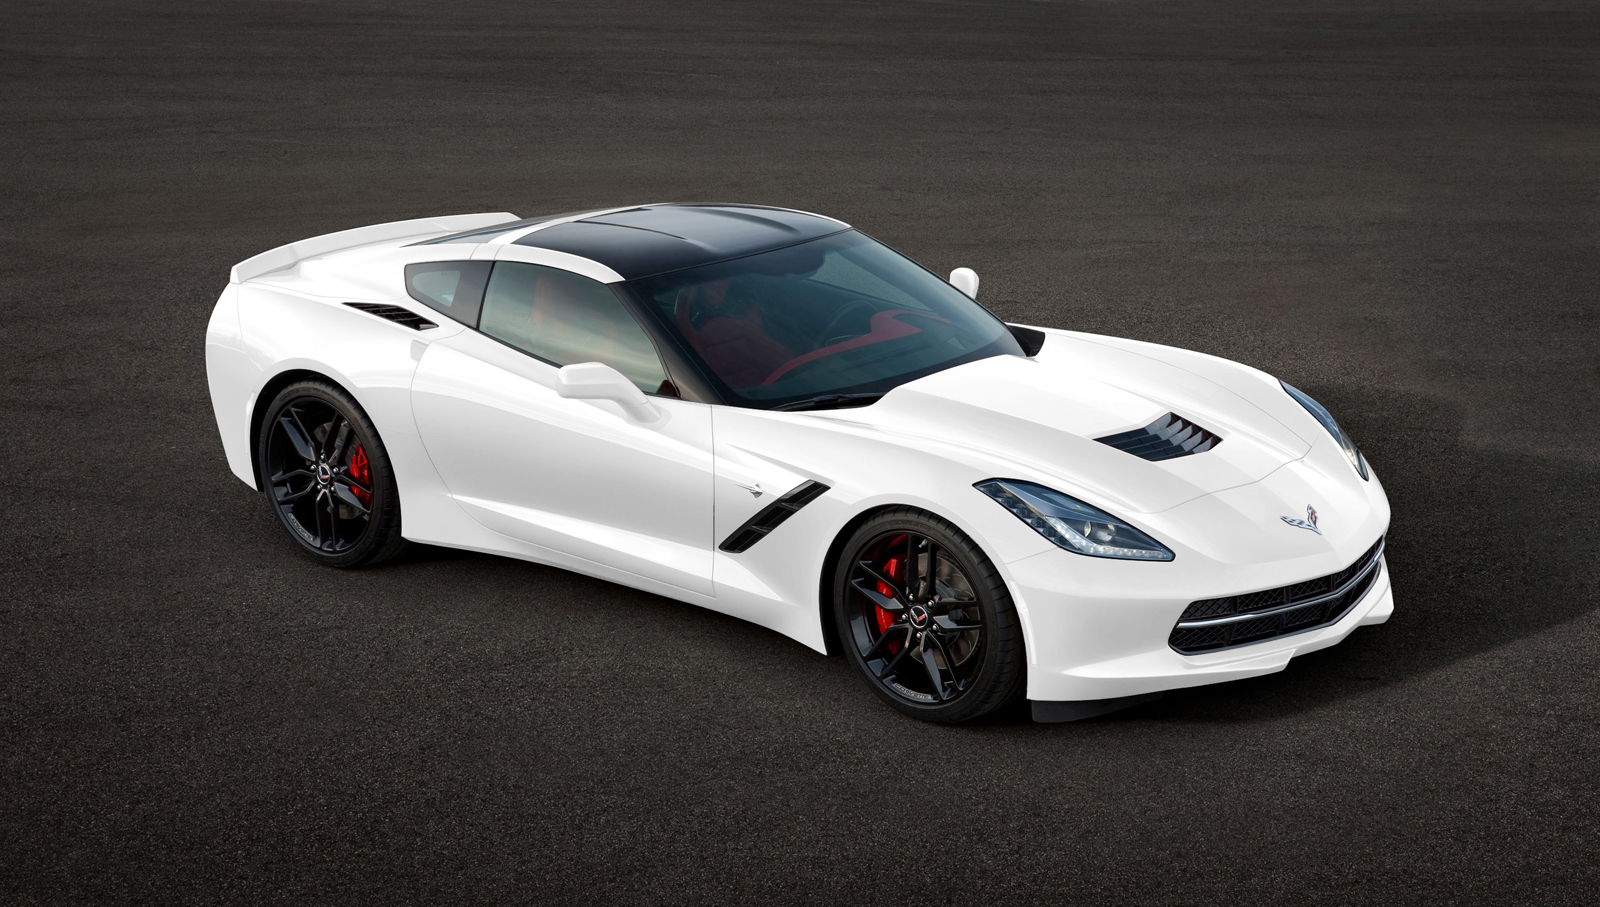 2014 chevrolet corvette stingray in all colors. Cars Review. Best American Auto & Cars Review